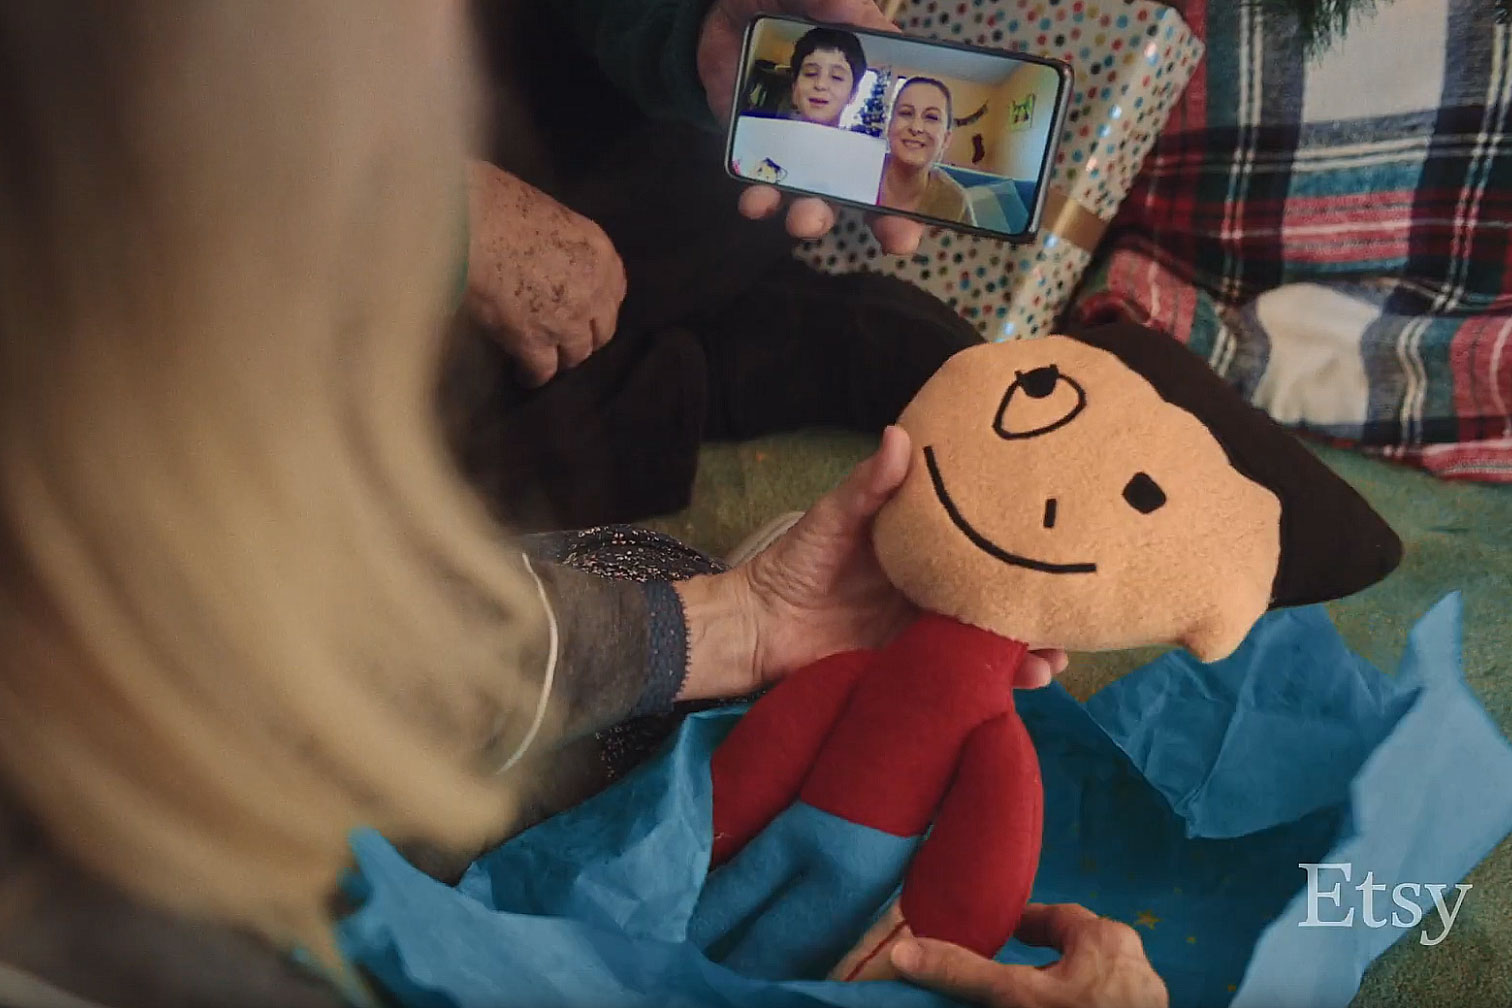 Etsy's new ads will have you crying over your handmade holiday presents